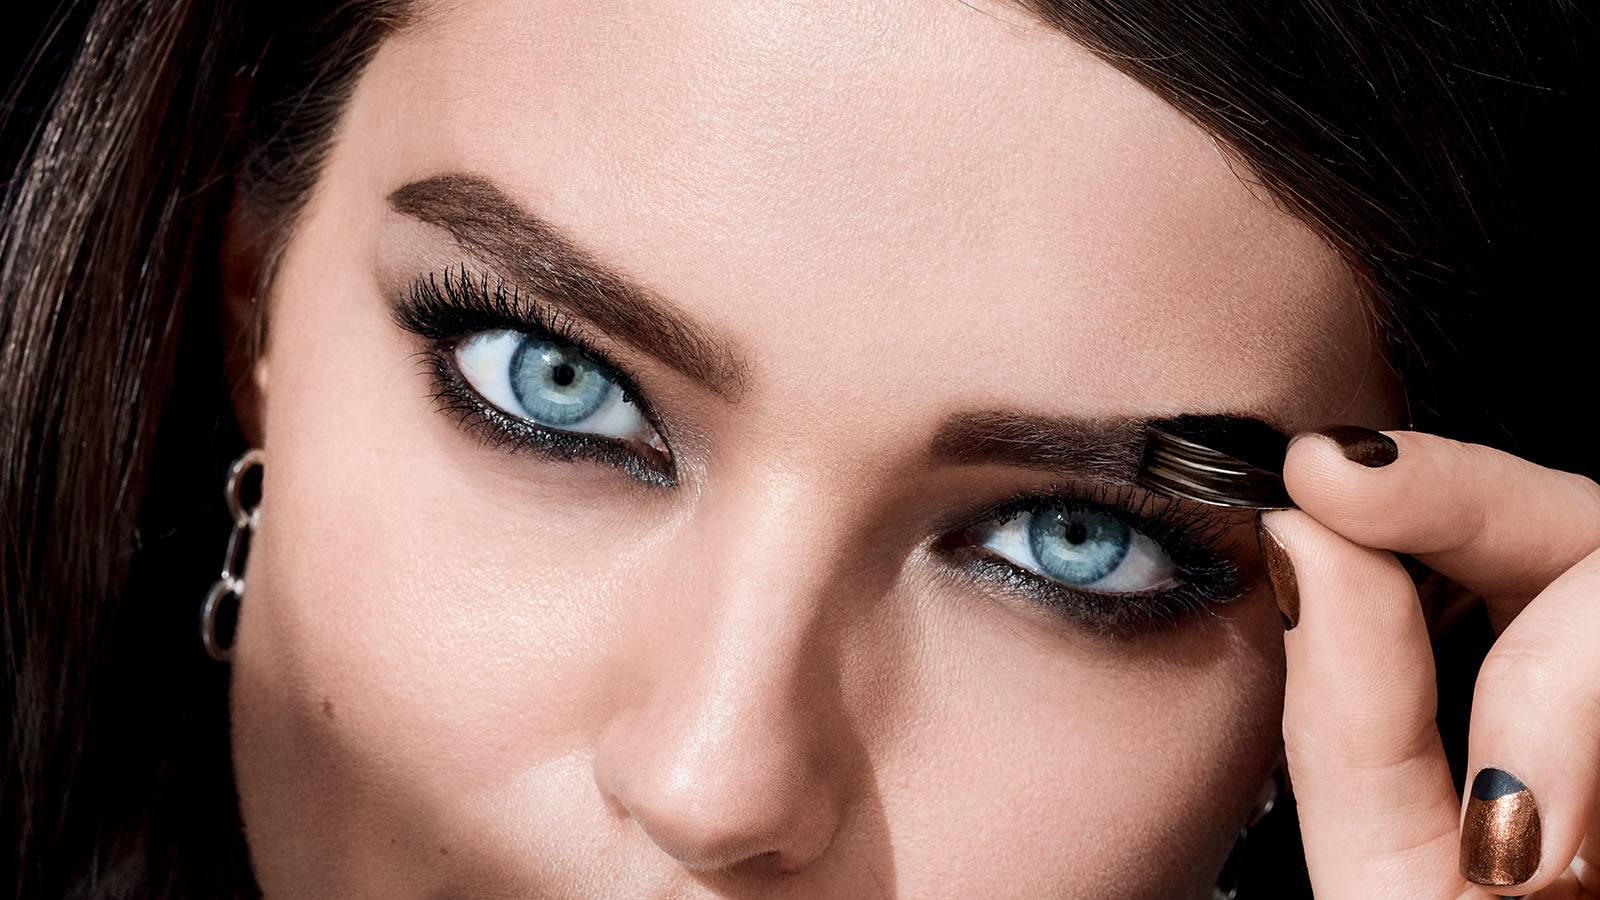 Eyebrow Tattoo: Have You Checked This Perfect Brow Setter? Maybelline